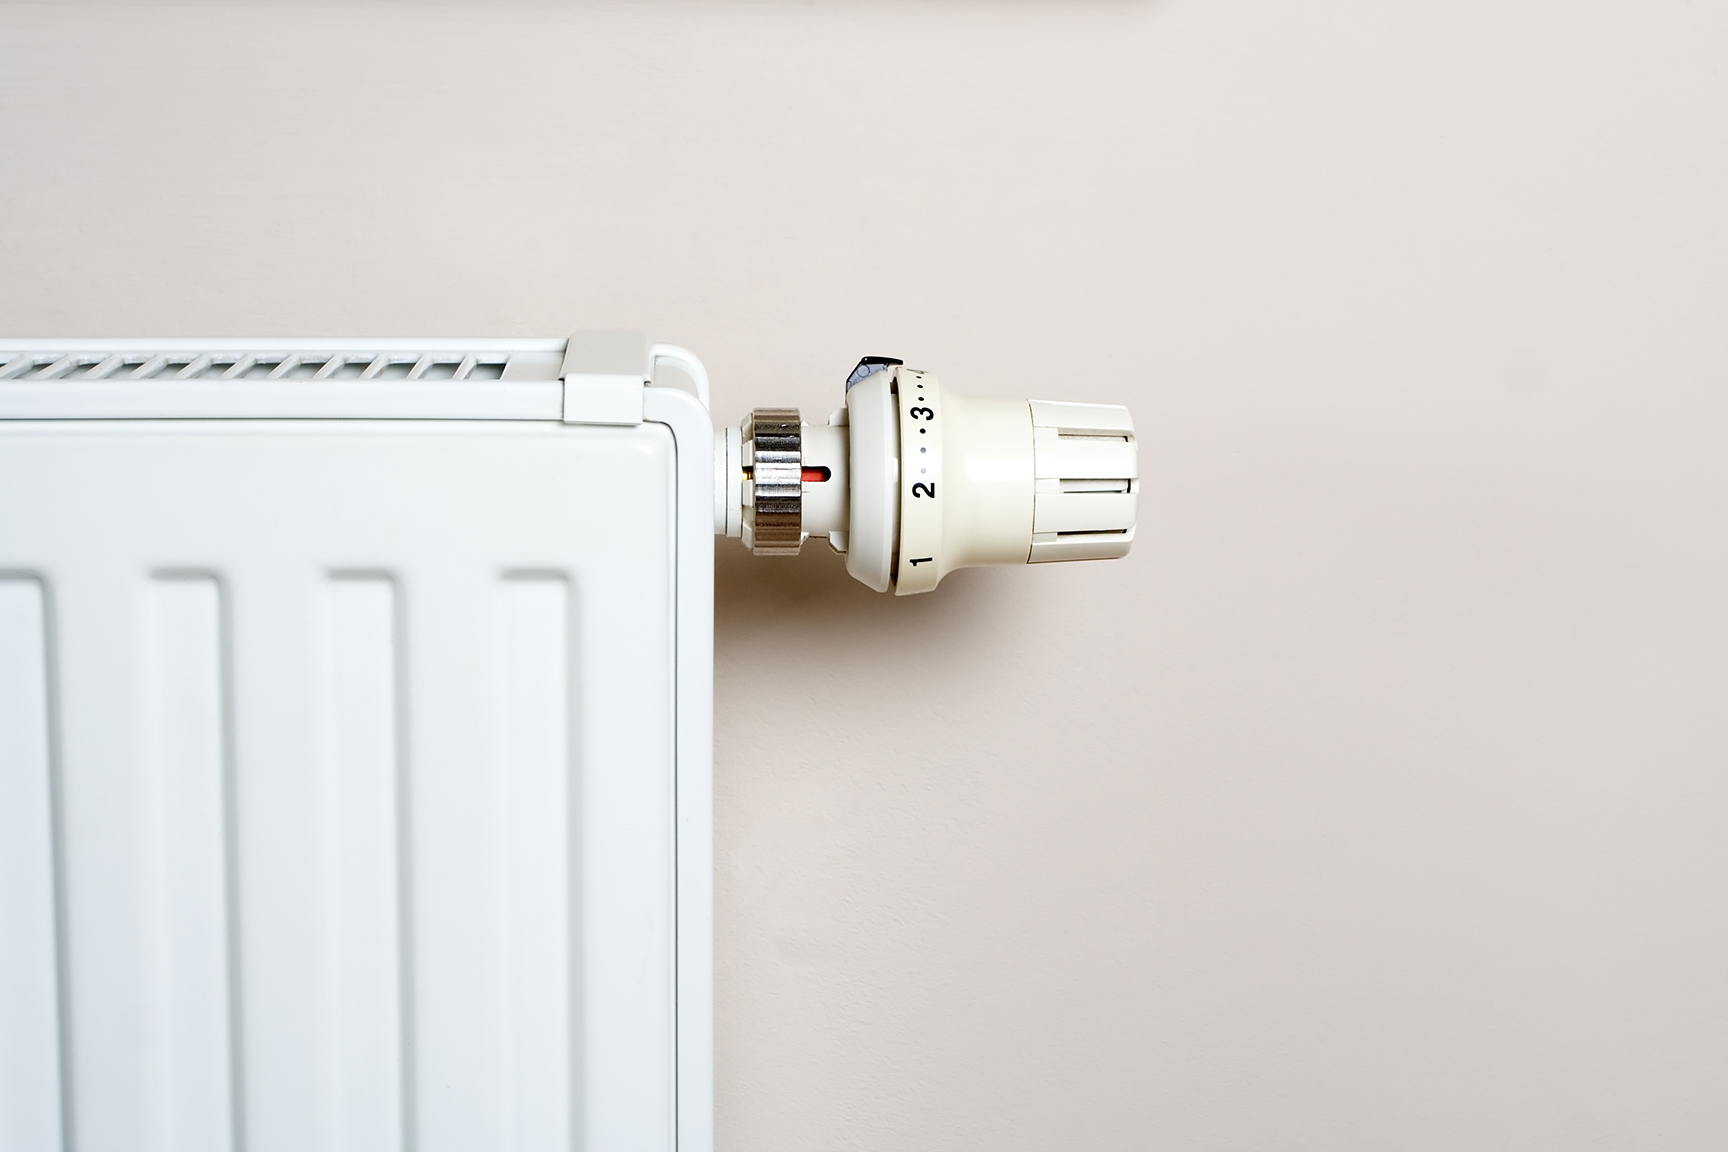 Radiator with knob on wall